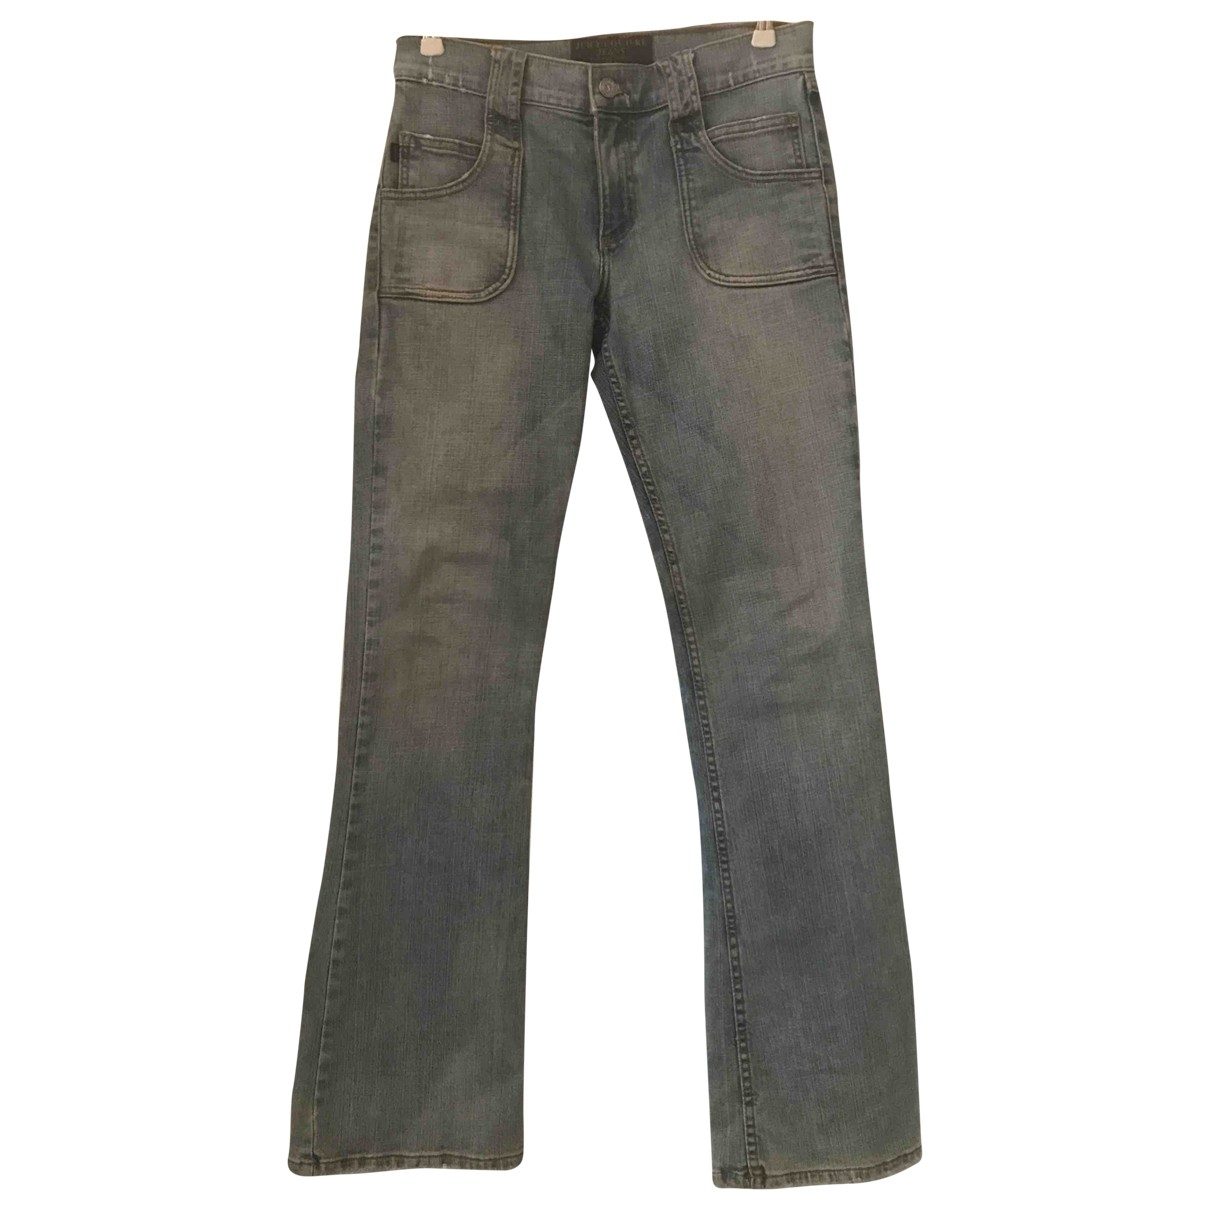 Juicy Couture \N Blue Denim - Jeans Trousers for Women 42 IT